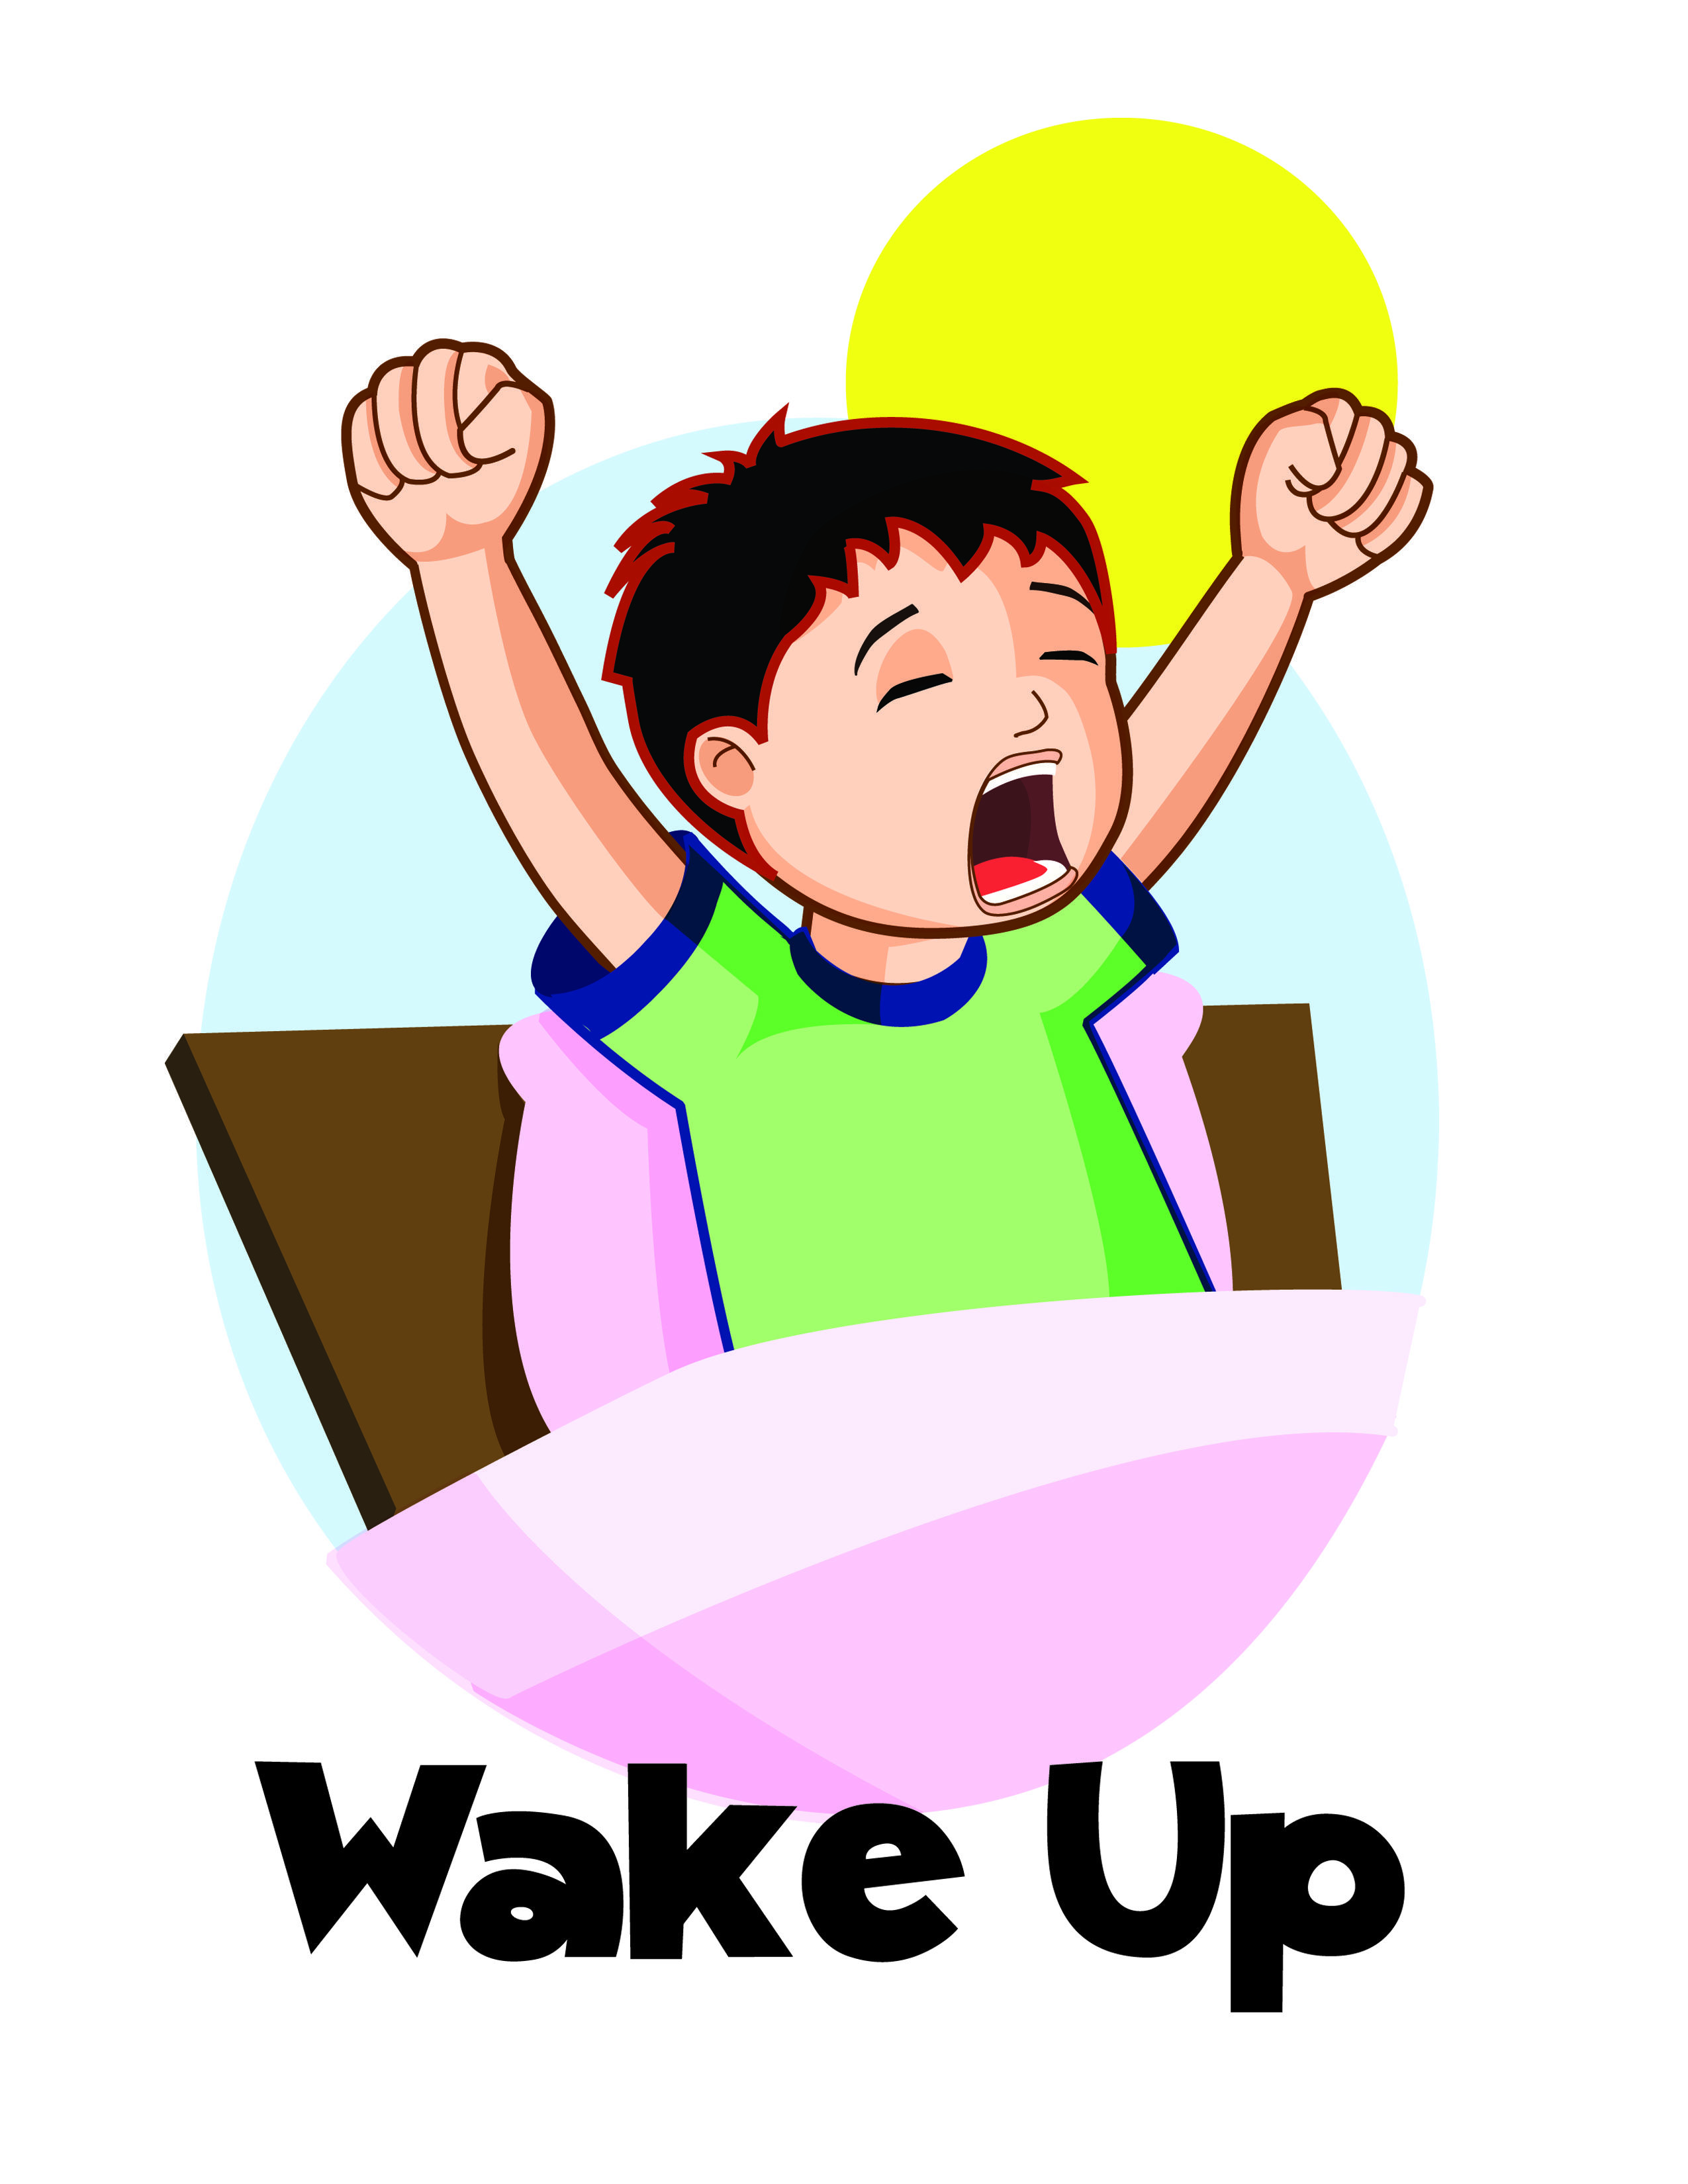 Waking clipart. Wake up clip